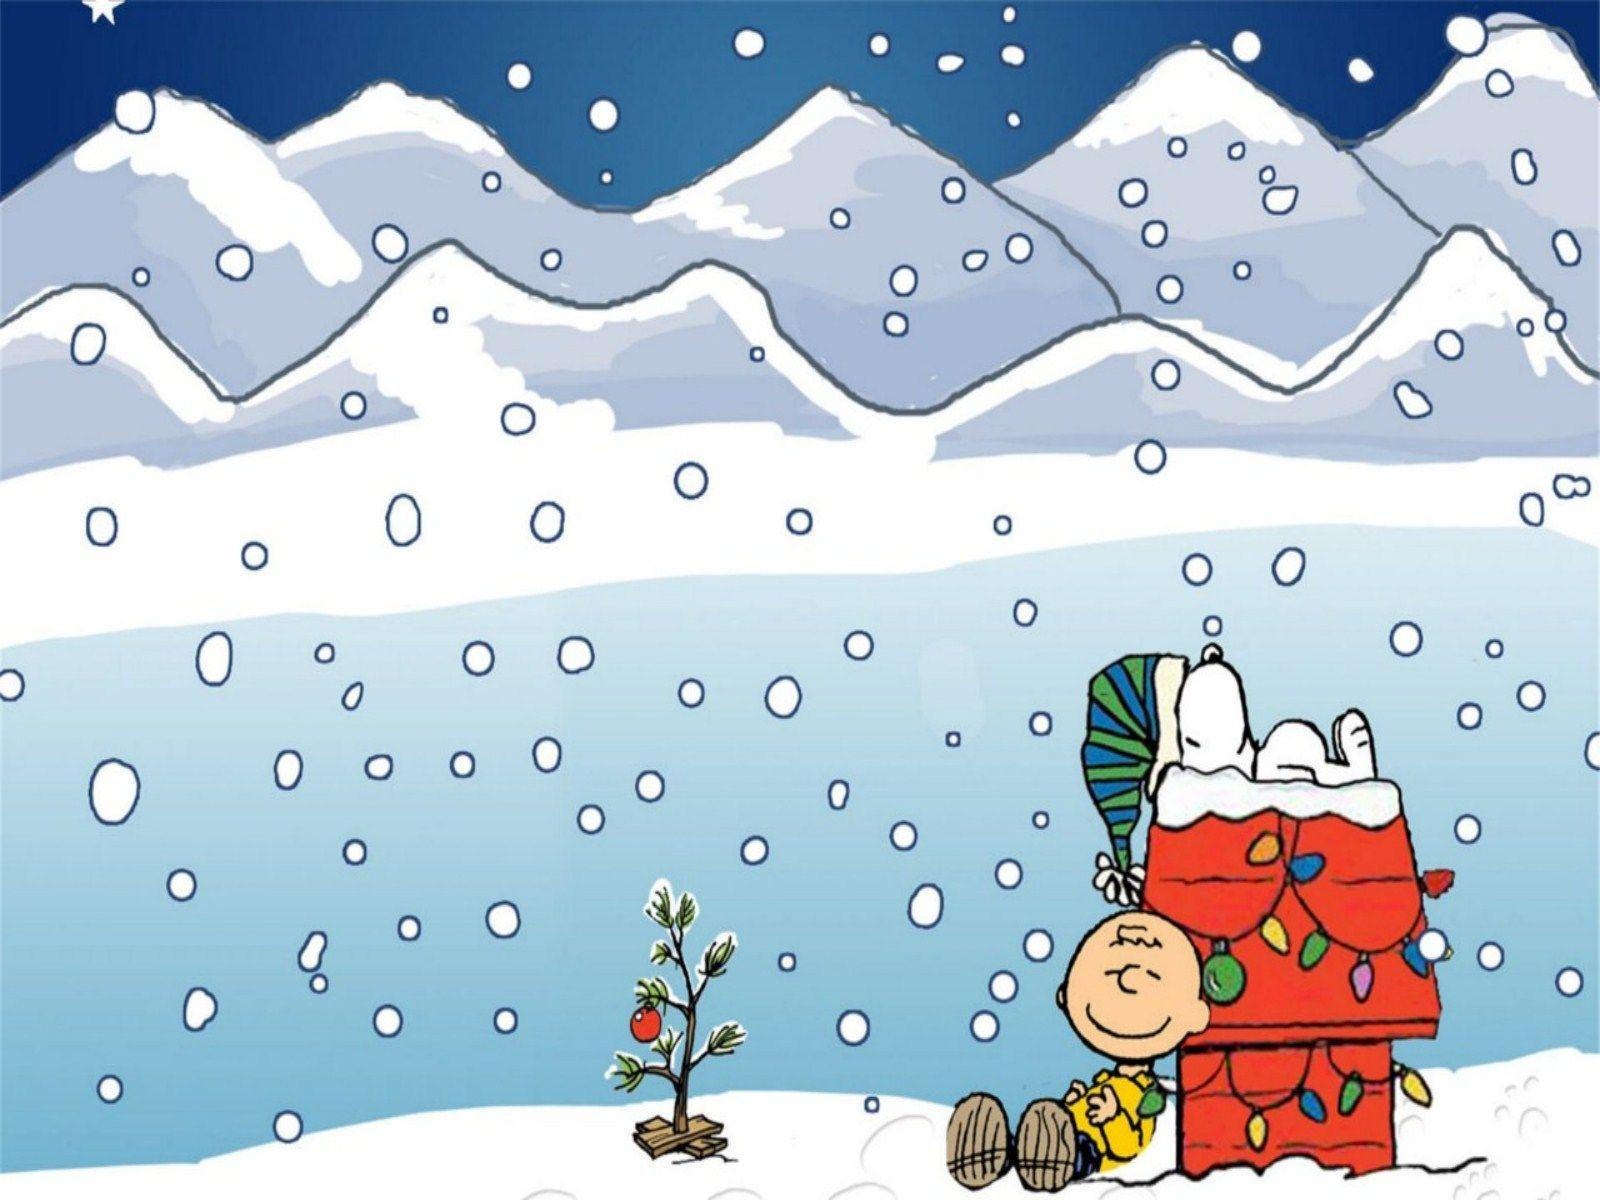 winter wallpaper charlie brown - photo #3